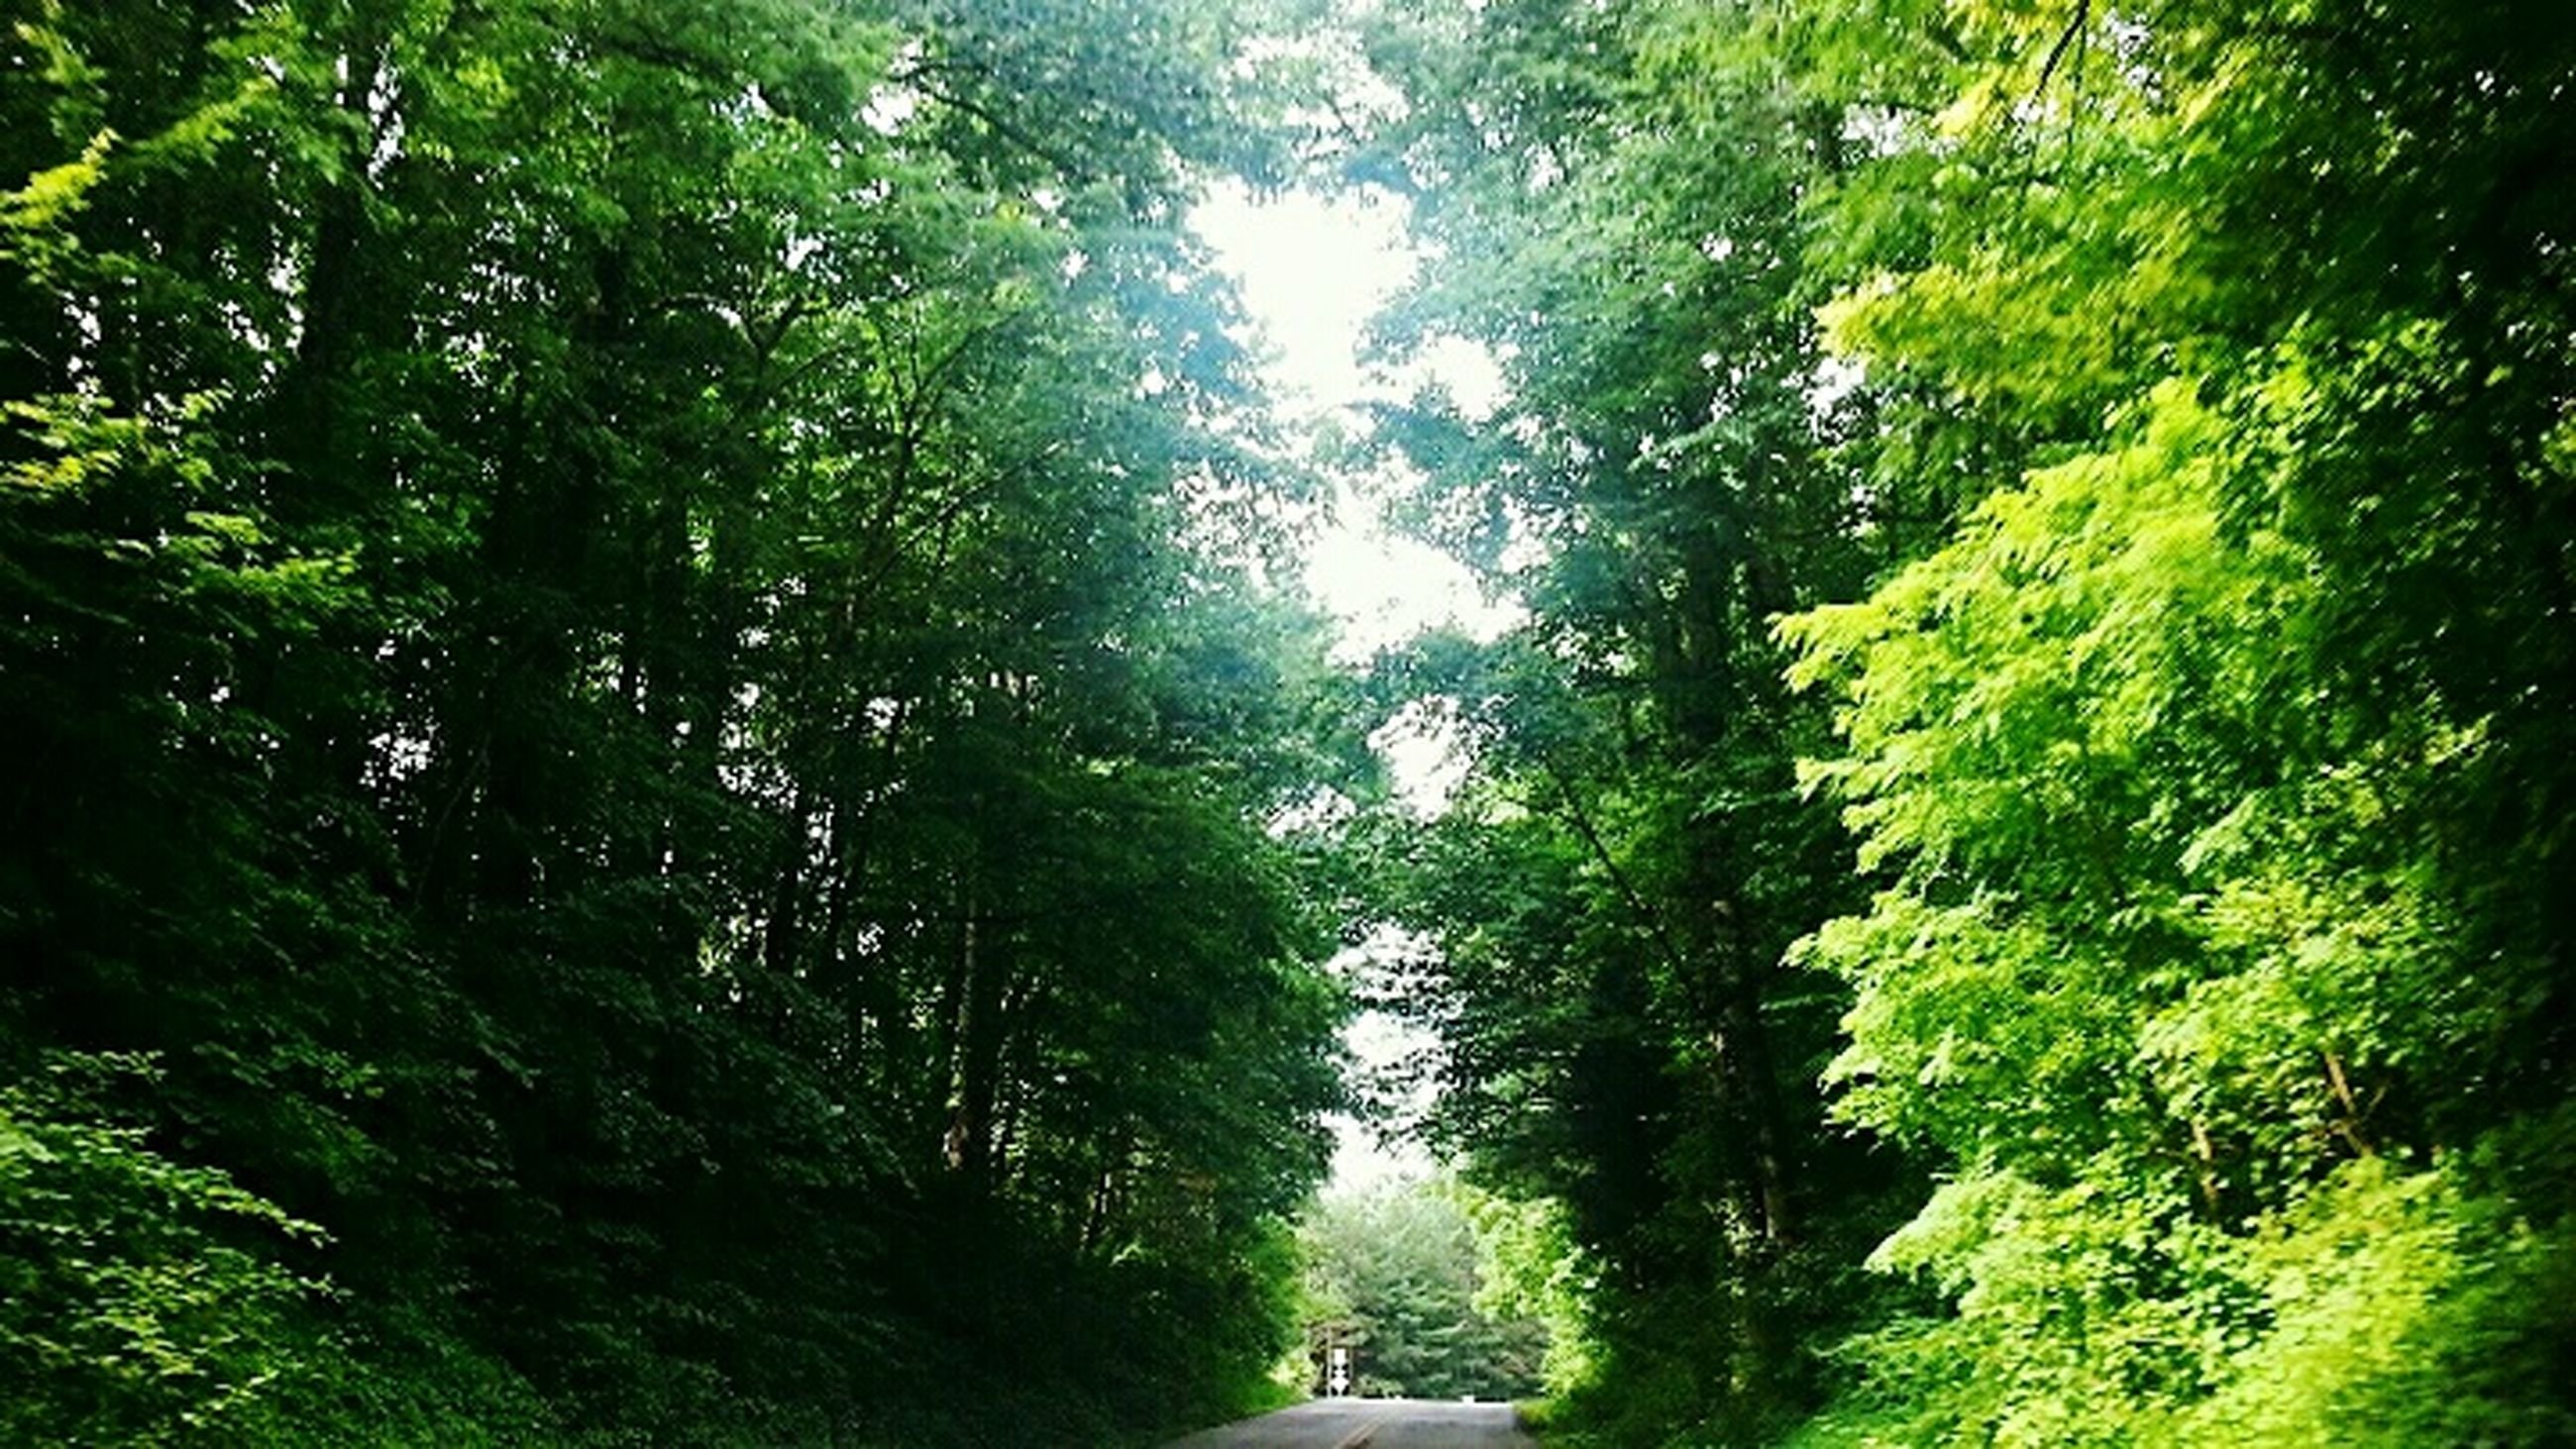 tree, green color, growth, the way forward, tranquility, nature, lush foliage, forest, tranquil scene, beauty in nature, branch, scenics, footpath, diminishing perspective, sunlight, day, transportation, outdoors, green, plant